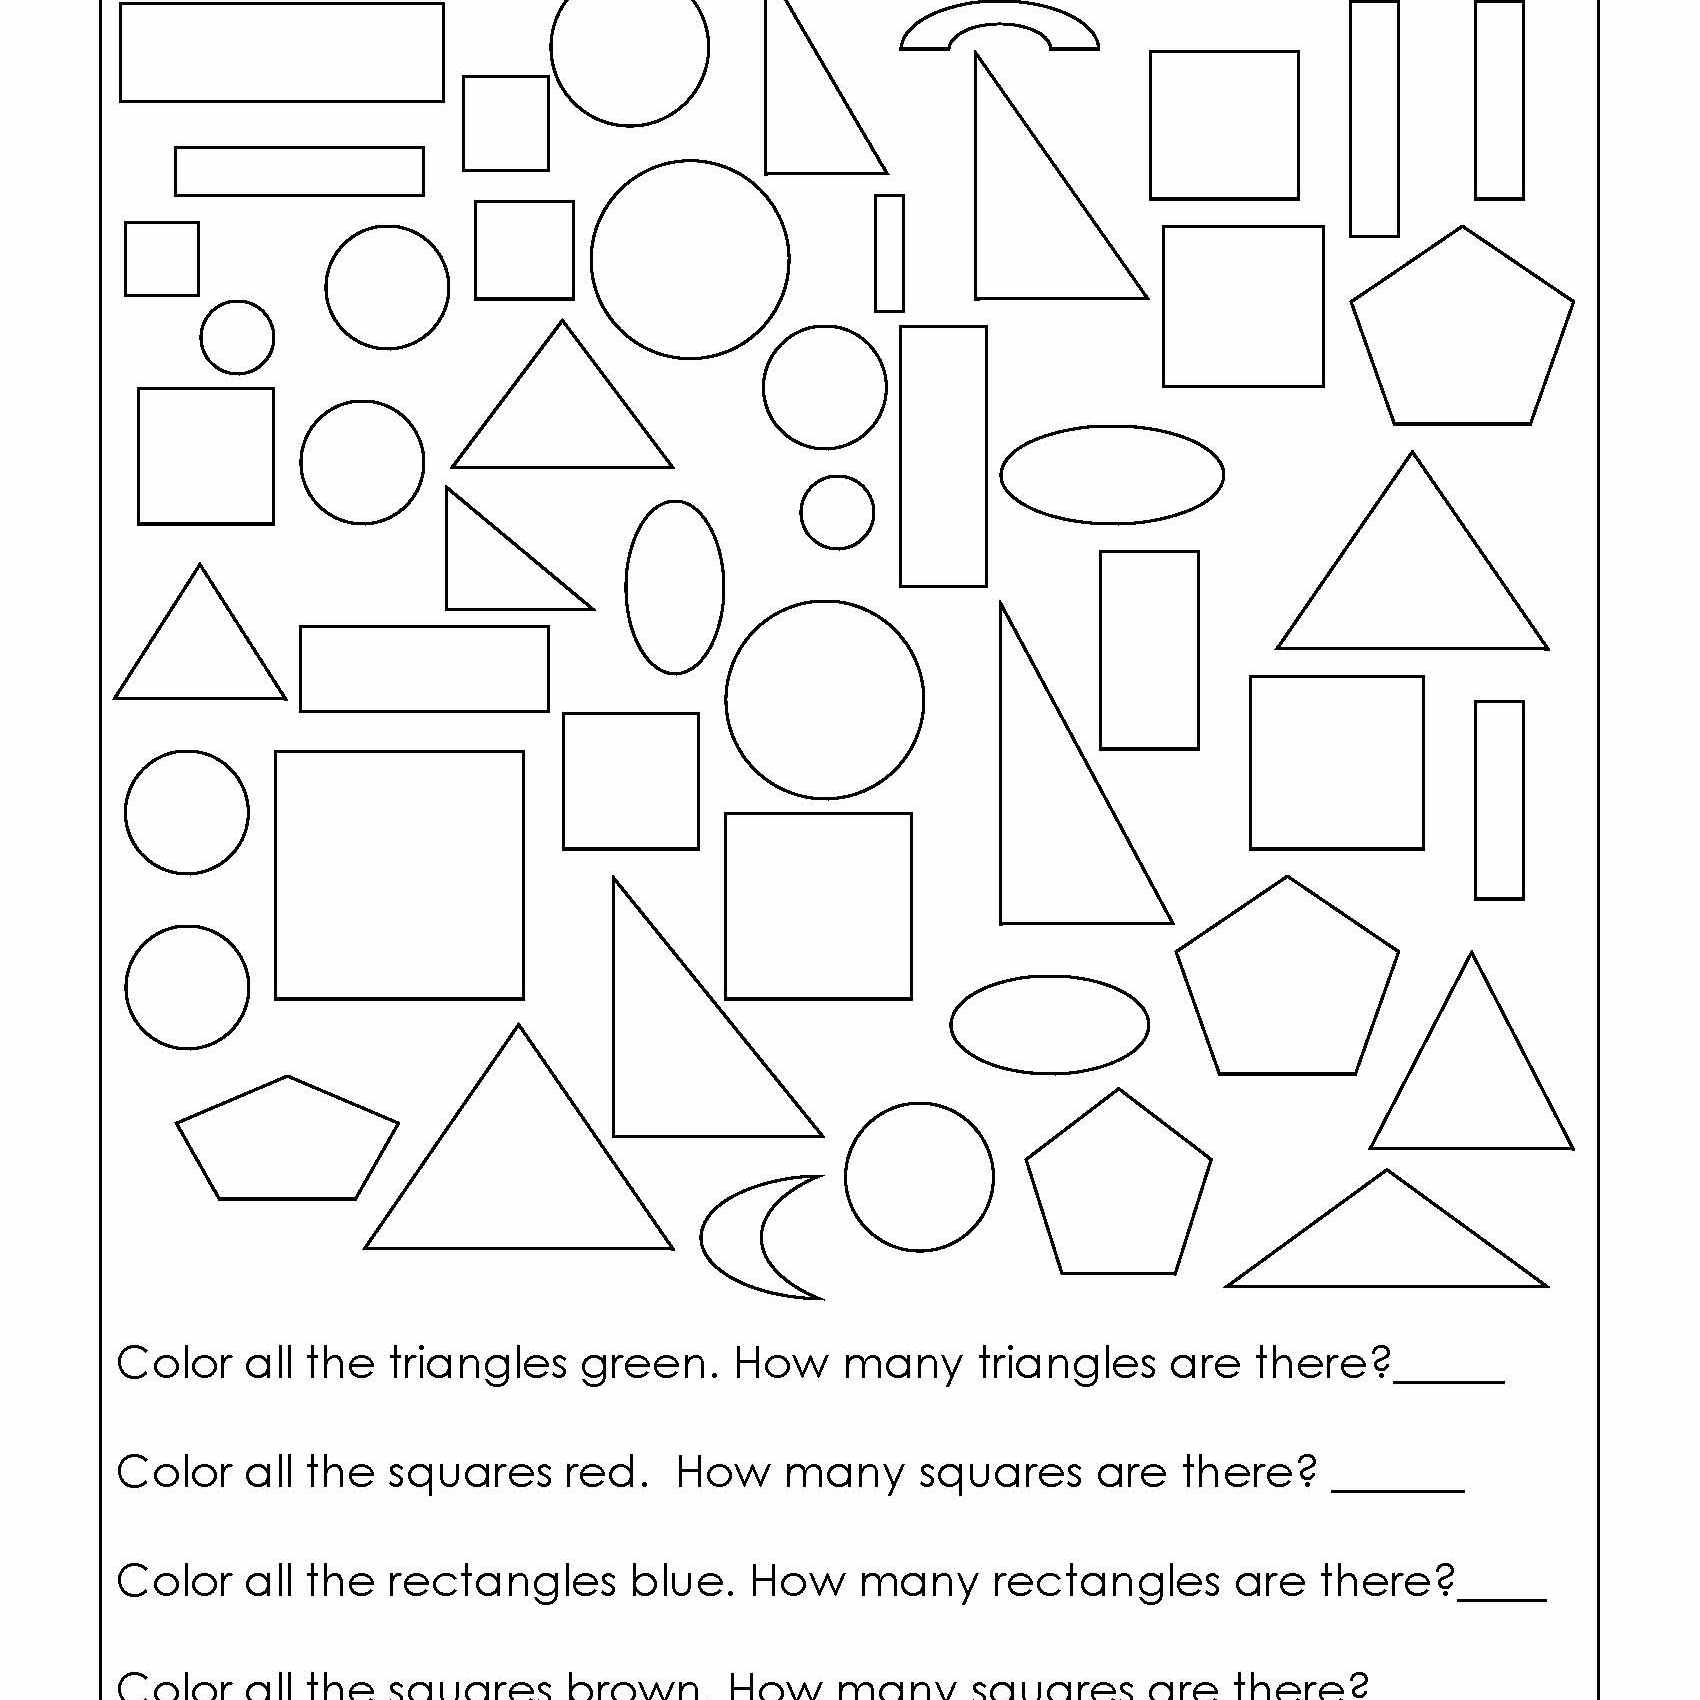 2 Easy Printable Color by Addition Worksheet Geometry Worksheets for  Students in 1st Grade   Geometry worksheets [ 1700 x 1700 Pixel ]